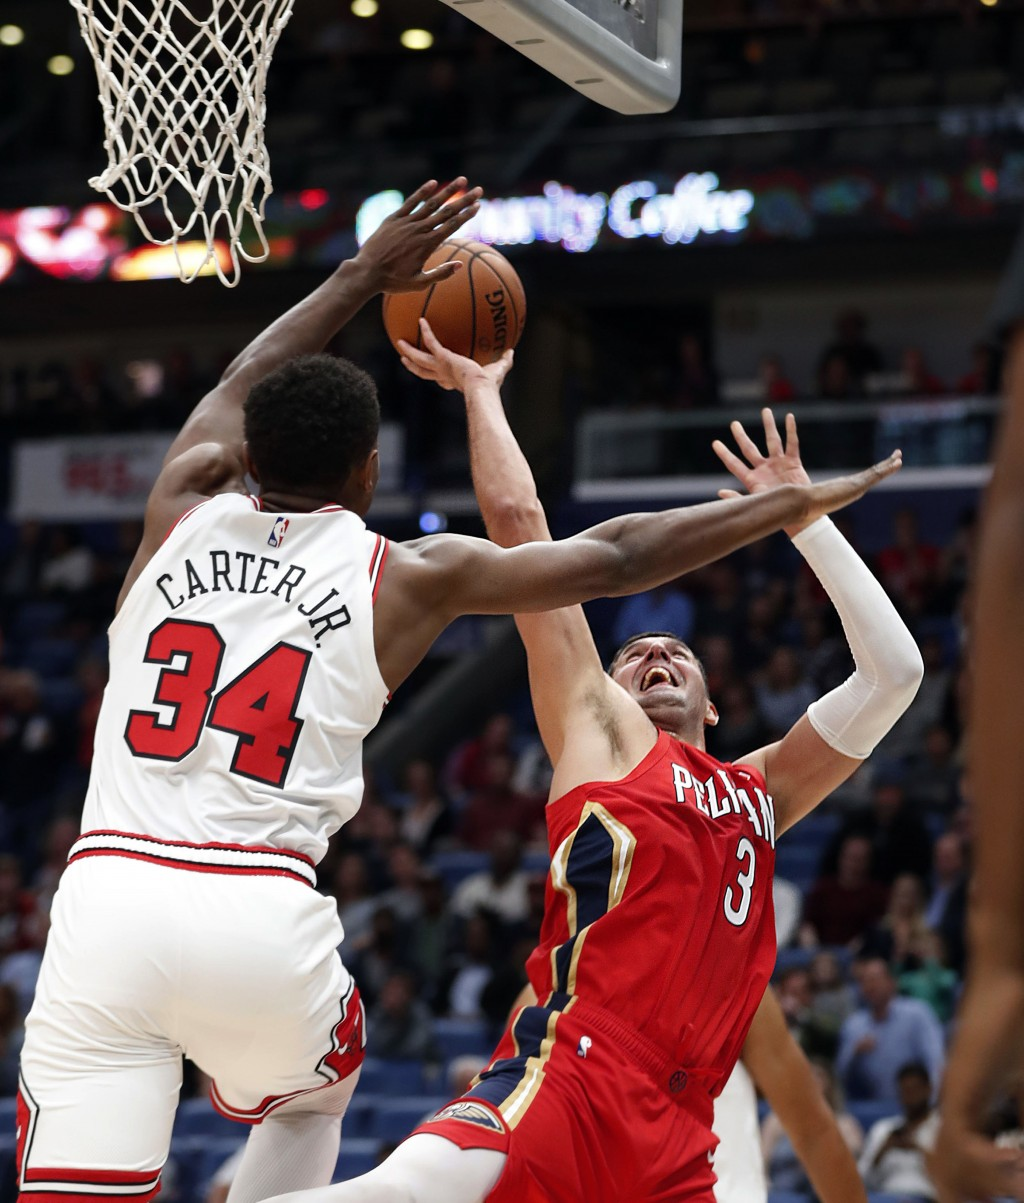 New Orleans Pelicans forward Nikola Mirotic (3) shoots against Chicago Bulls forward Wendell Carter Jr. (34) during the first half of an NBA basketbal...